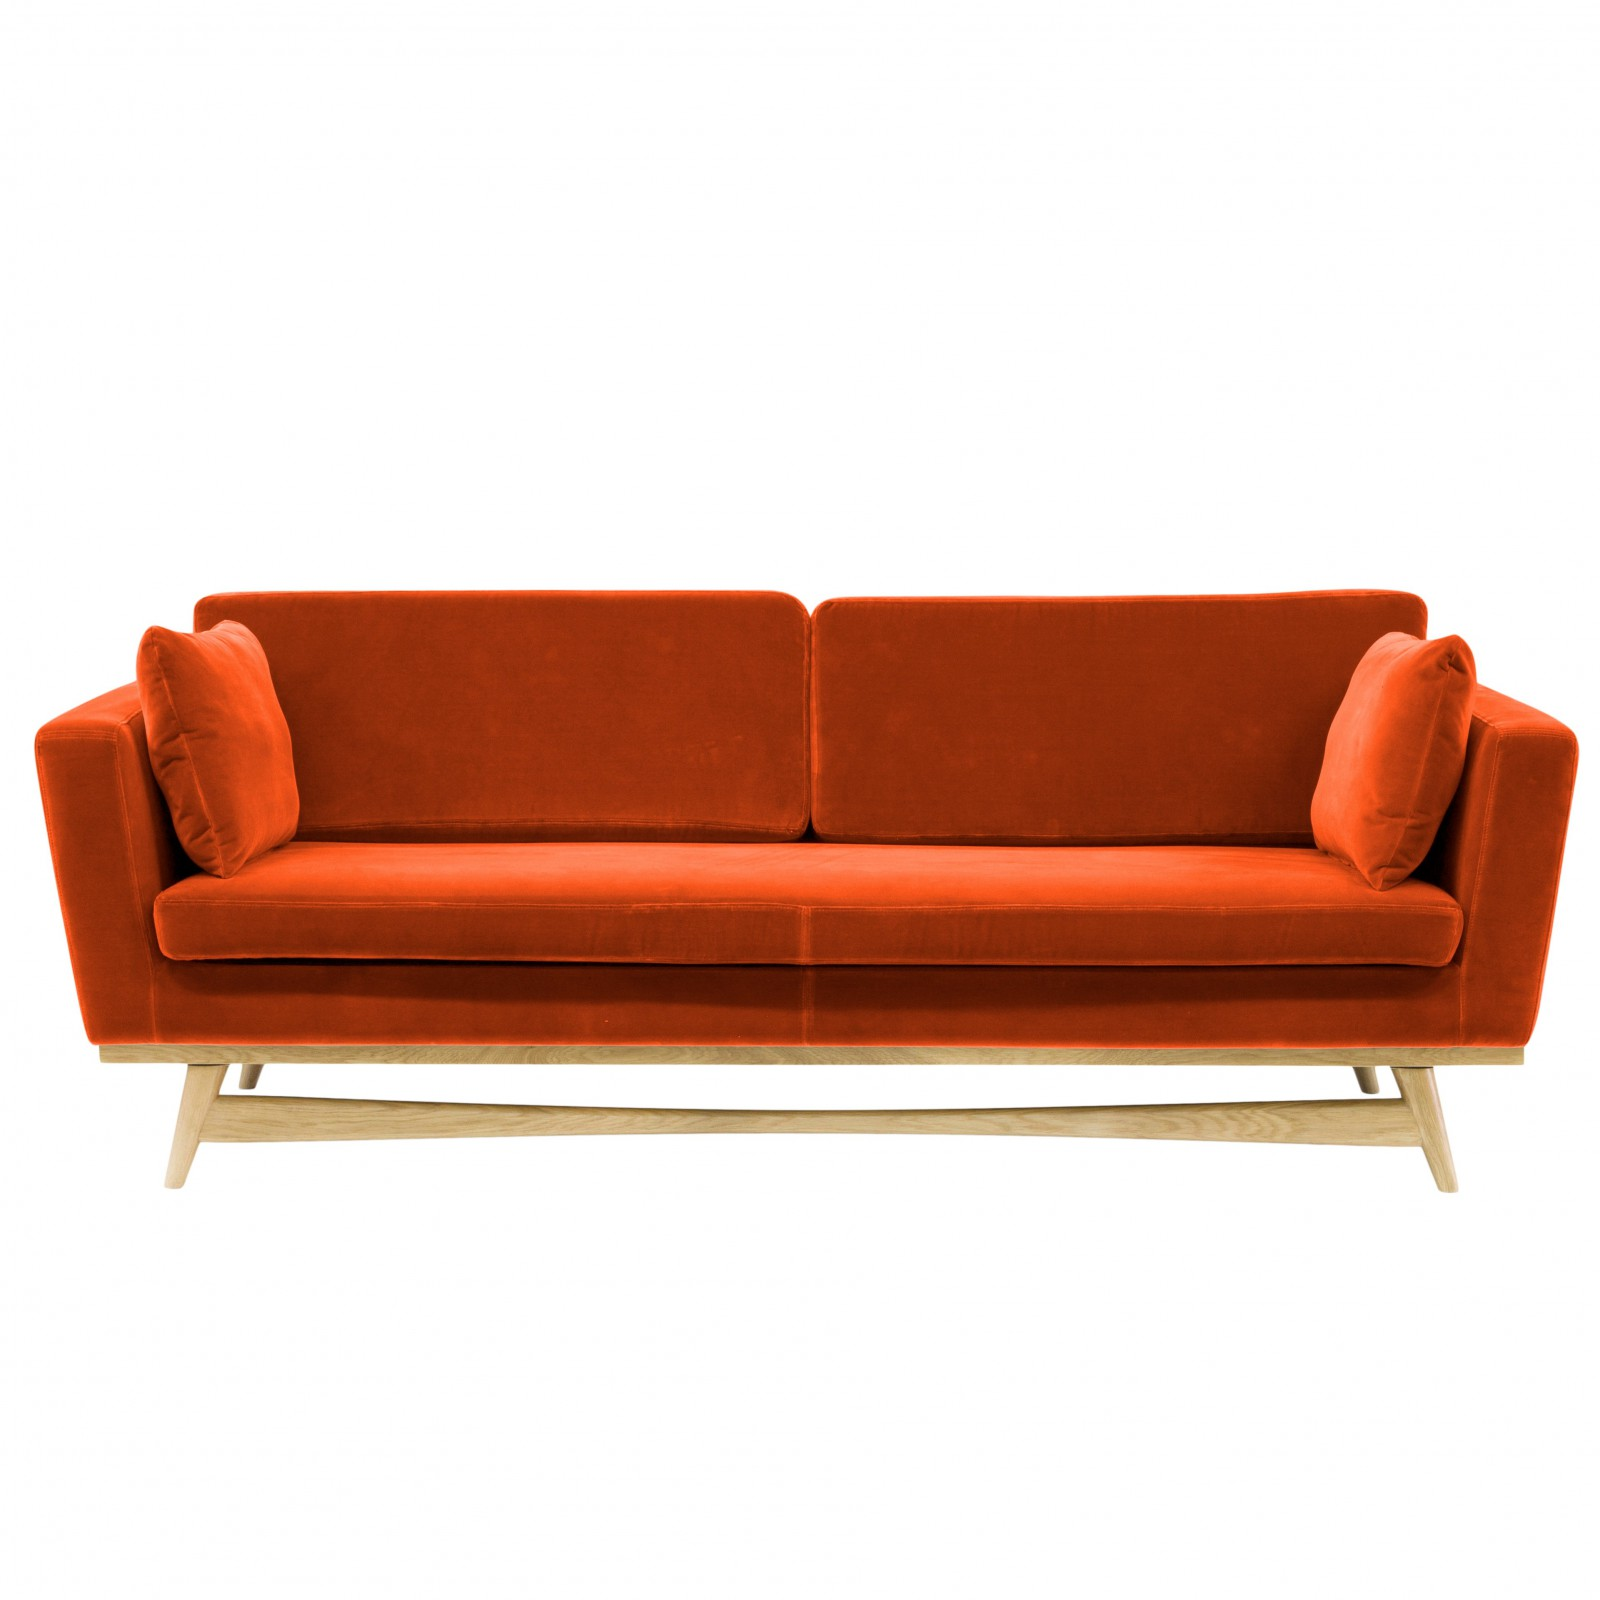 Vintage Couch Large Vintage Sofa Orange Velvet